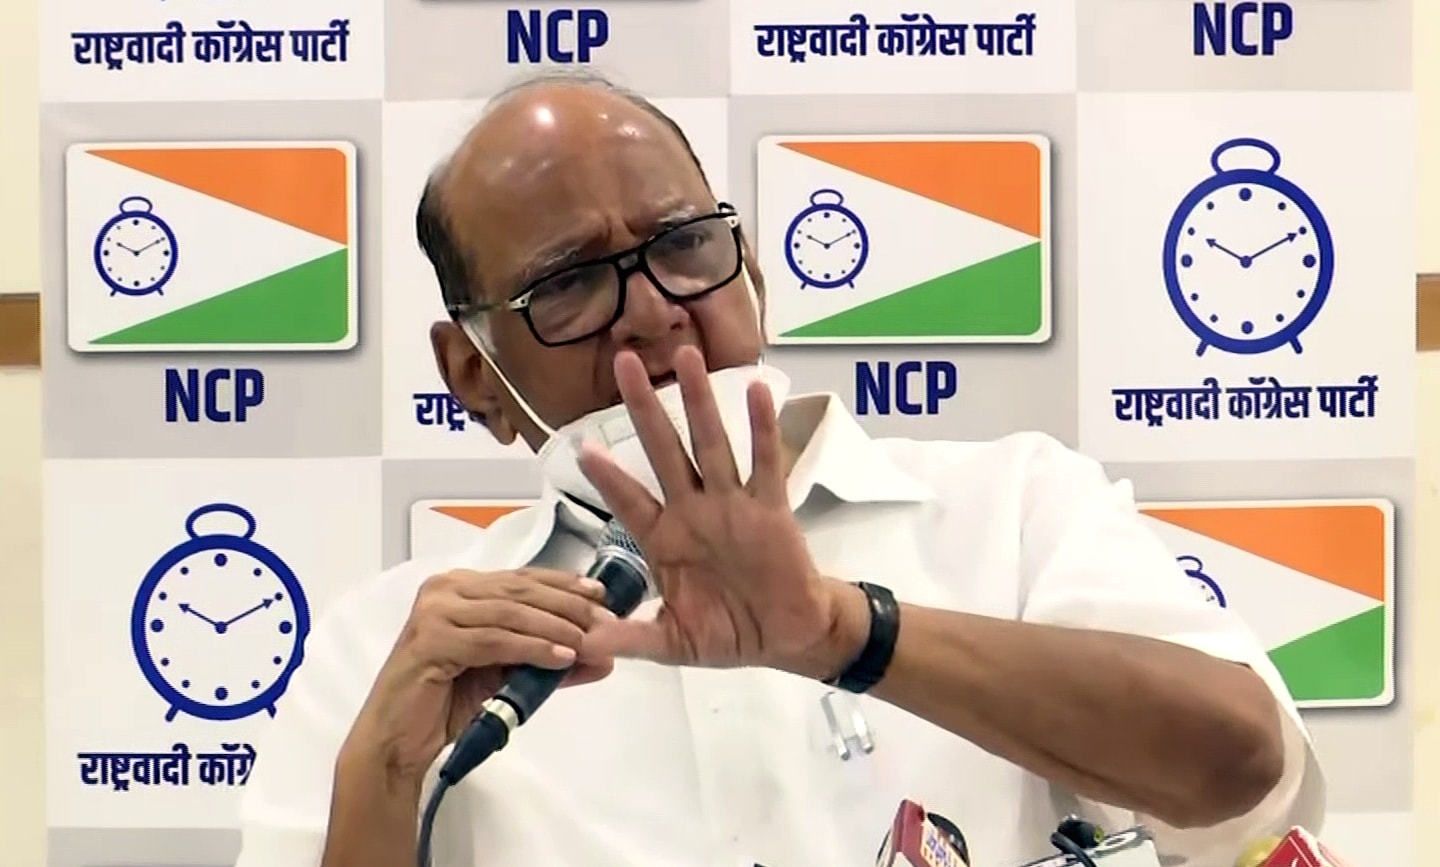 NCP Chief Sharad Pawar addressing a press conference in Mumbai